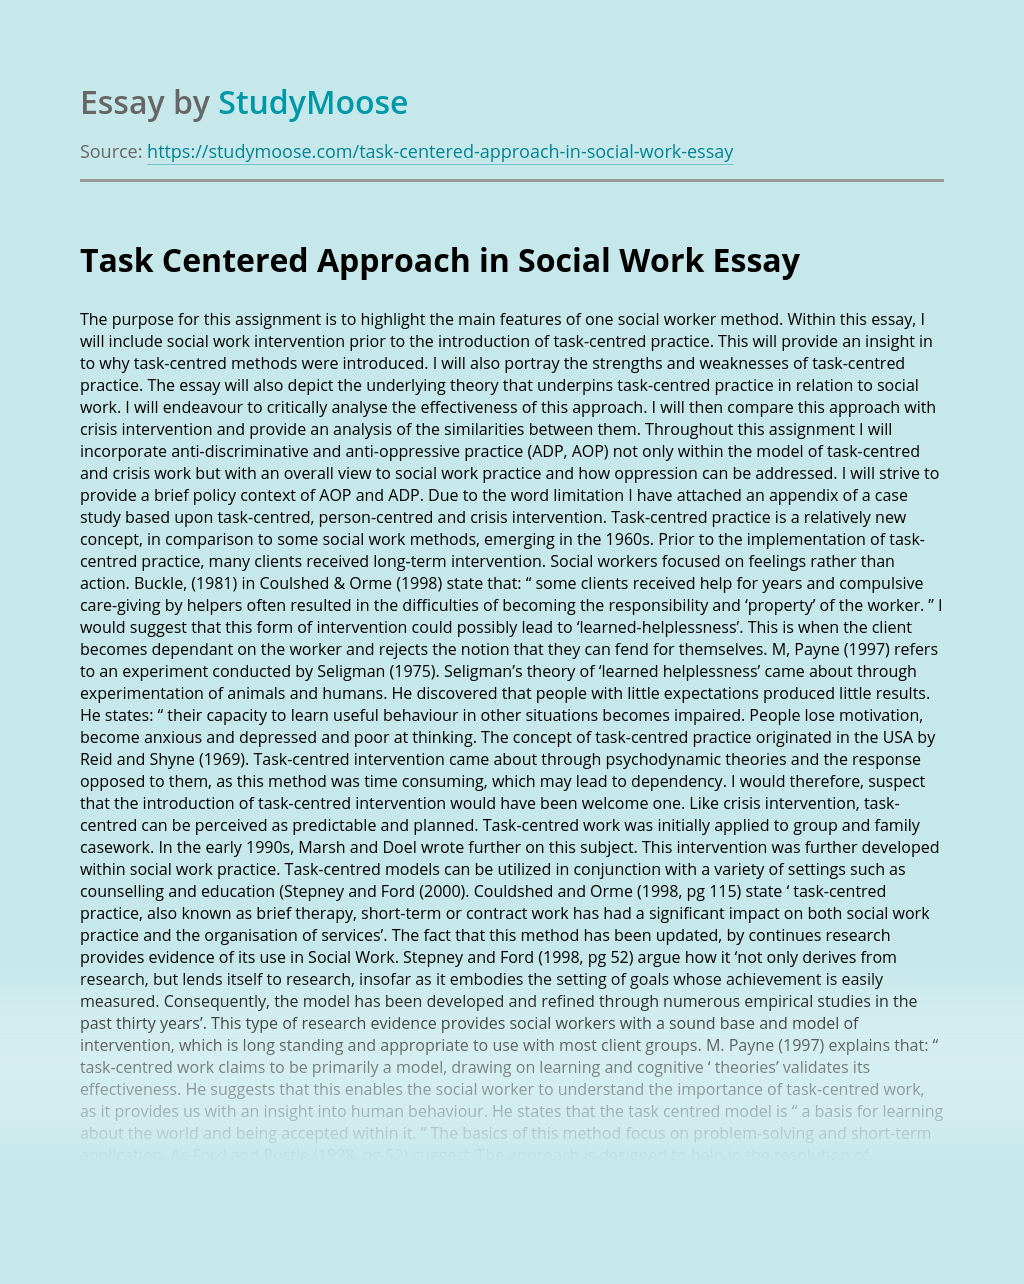 Task Centered Approach in Social Work